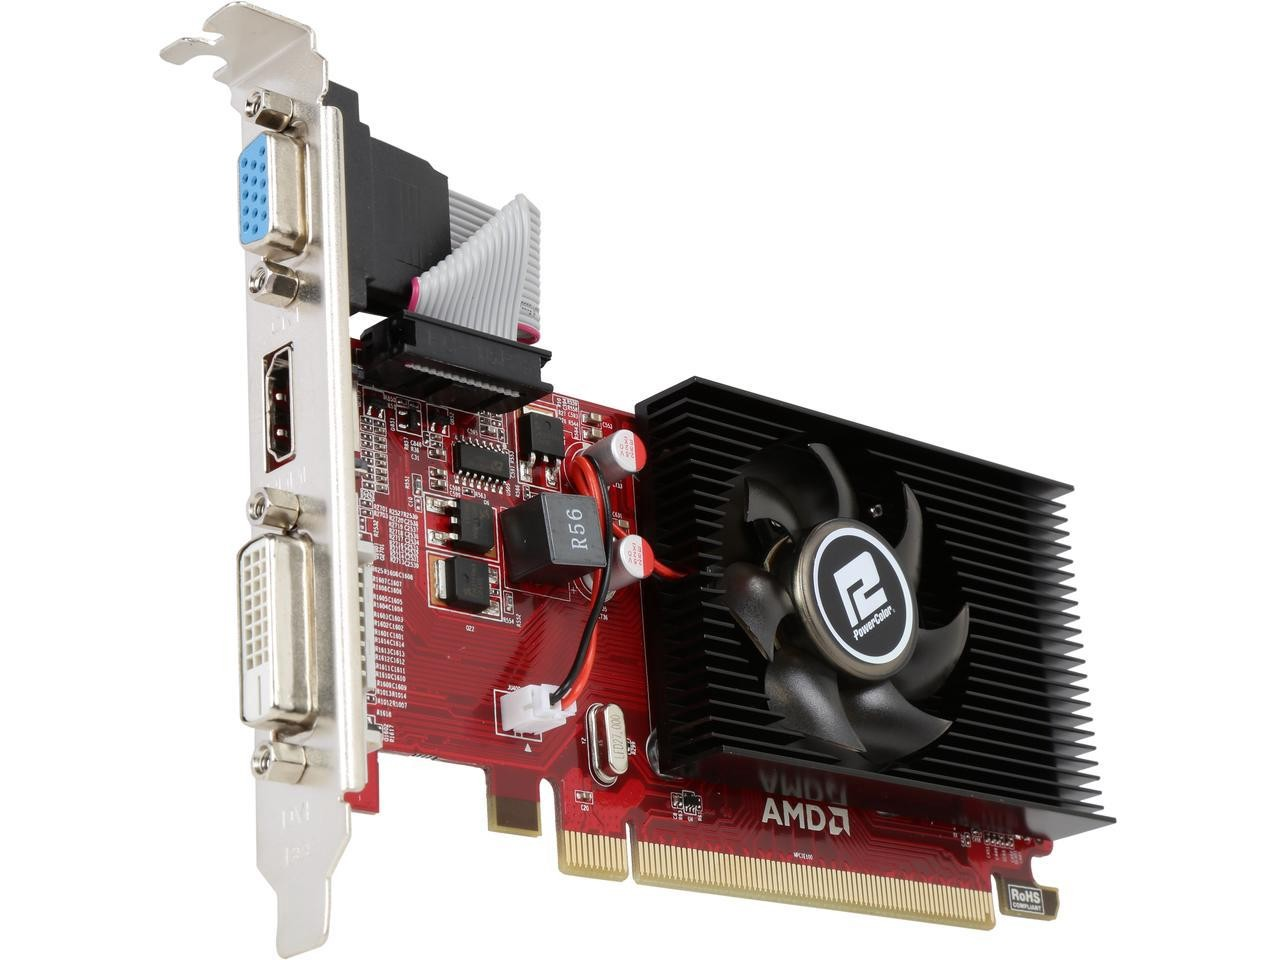 Placa de Vídeo PowerColor AMD Radeon R5 230 - 2GB DDR3 64bit - PCI Express  2 1